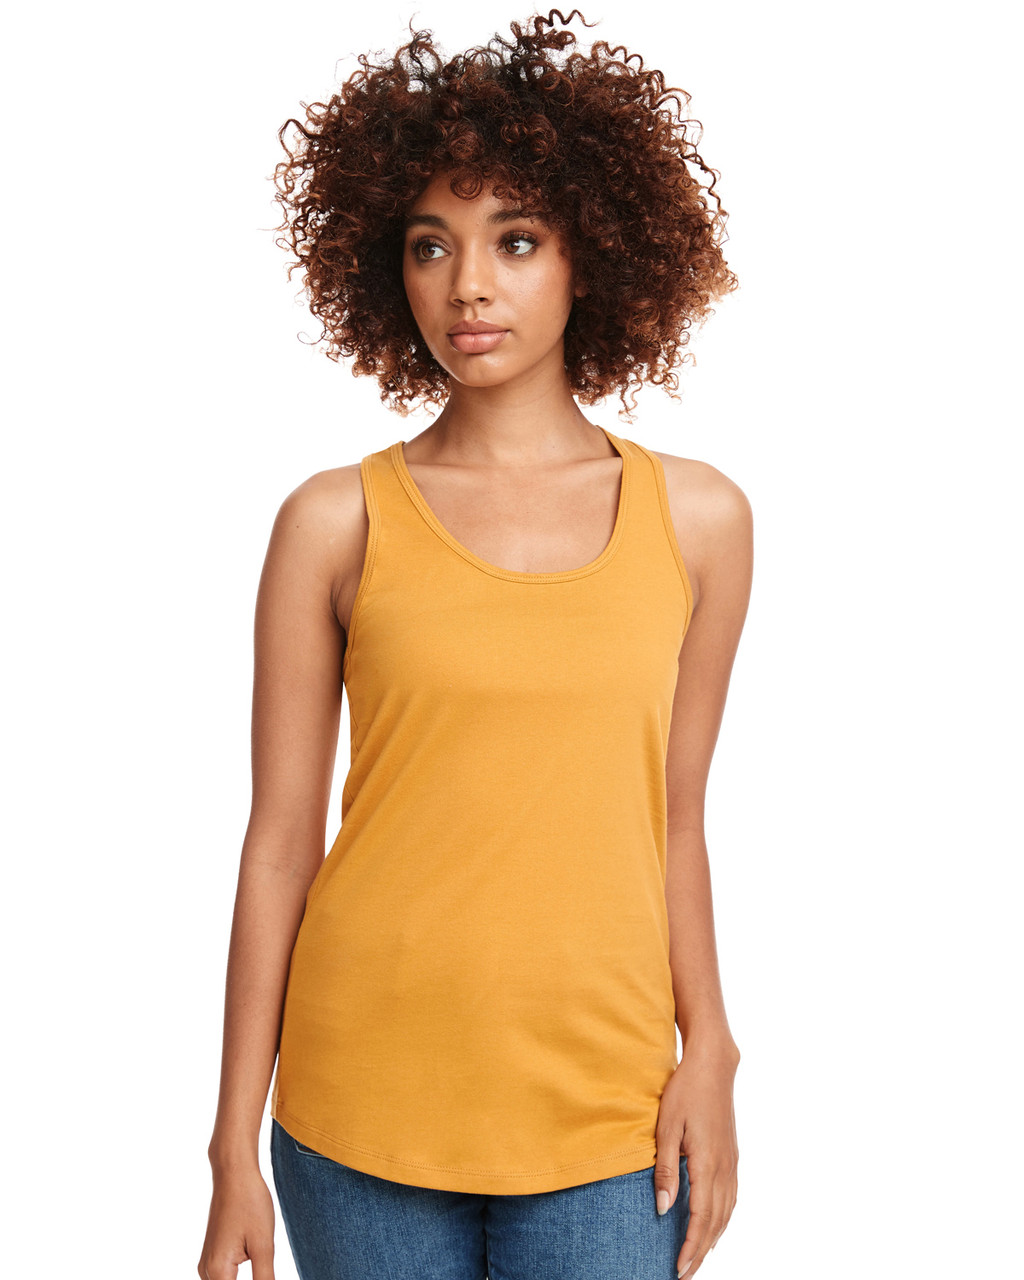 Antique Gold - N1533 Next Level Ideal Racerback Tank Top | Blankclothing.ca